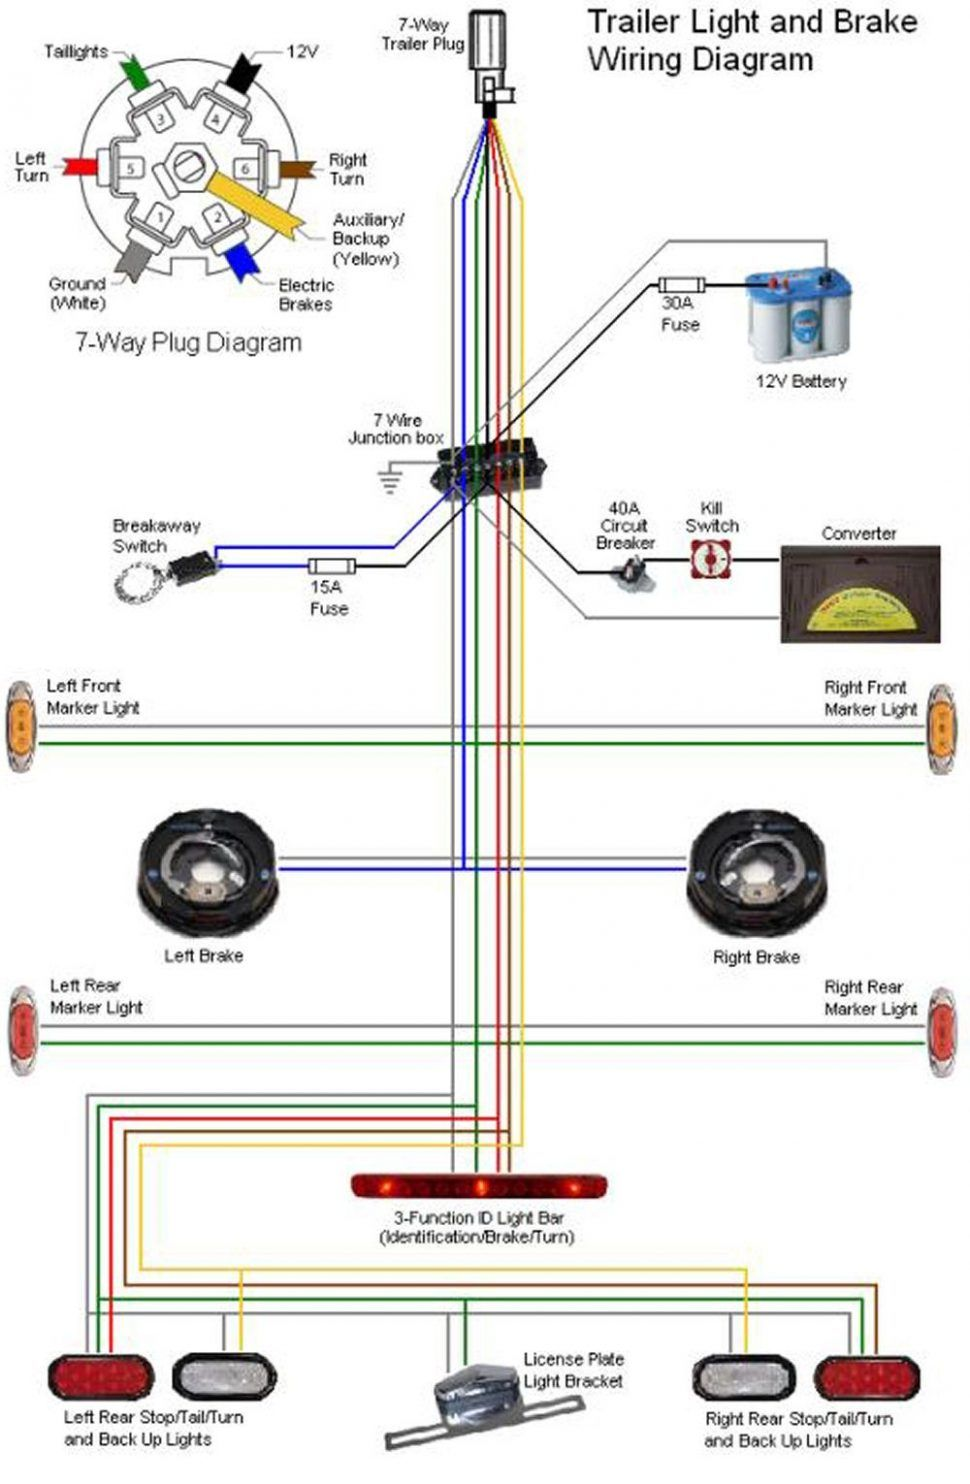 Seven Pin Trailer Wiring Diagram Trailer Light Wiring Utility Trailer Trailer Wiring Diagram